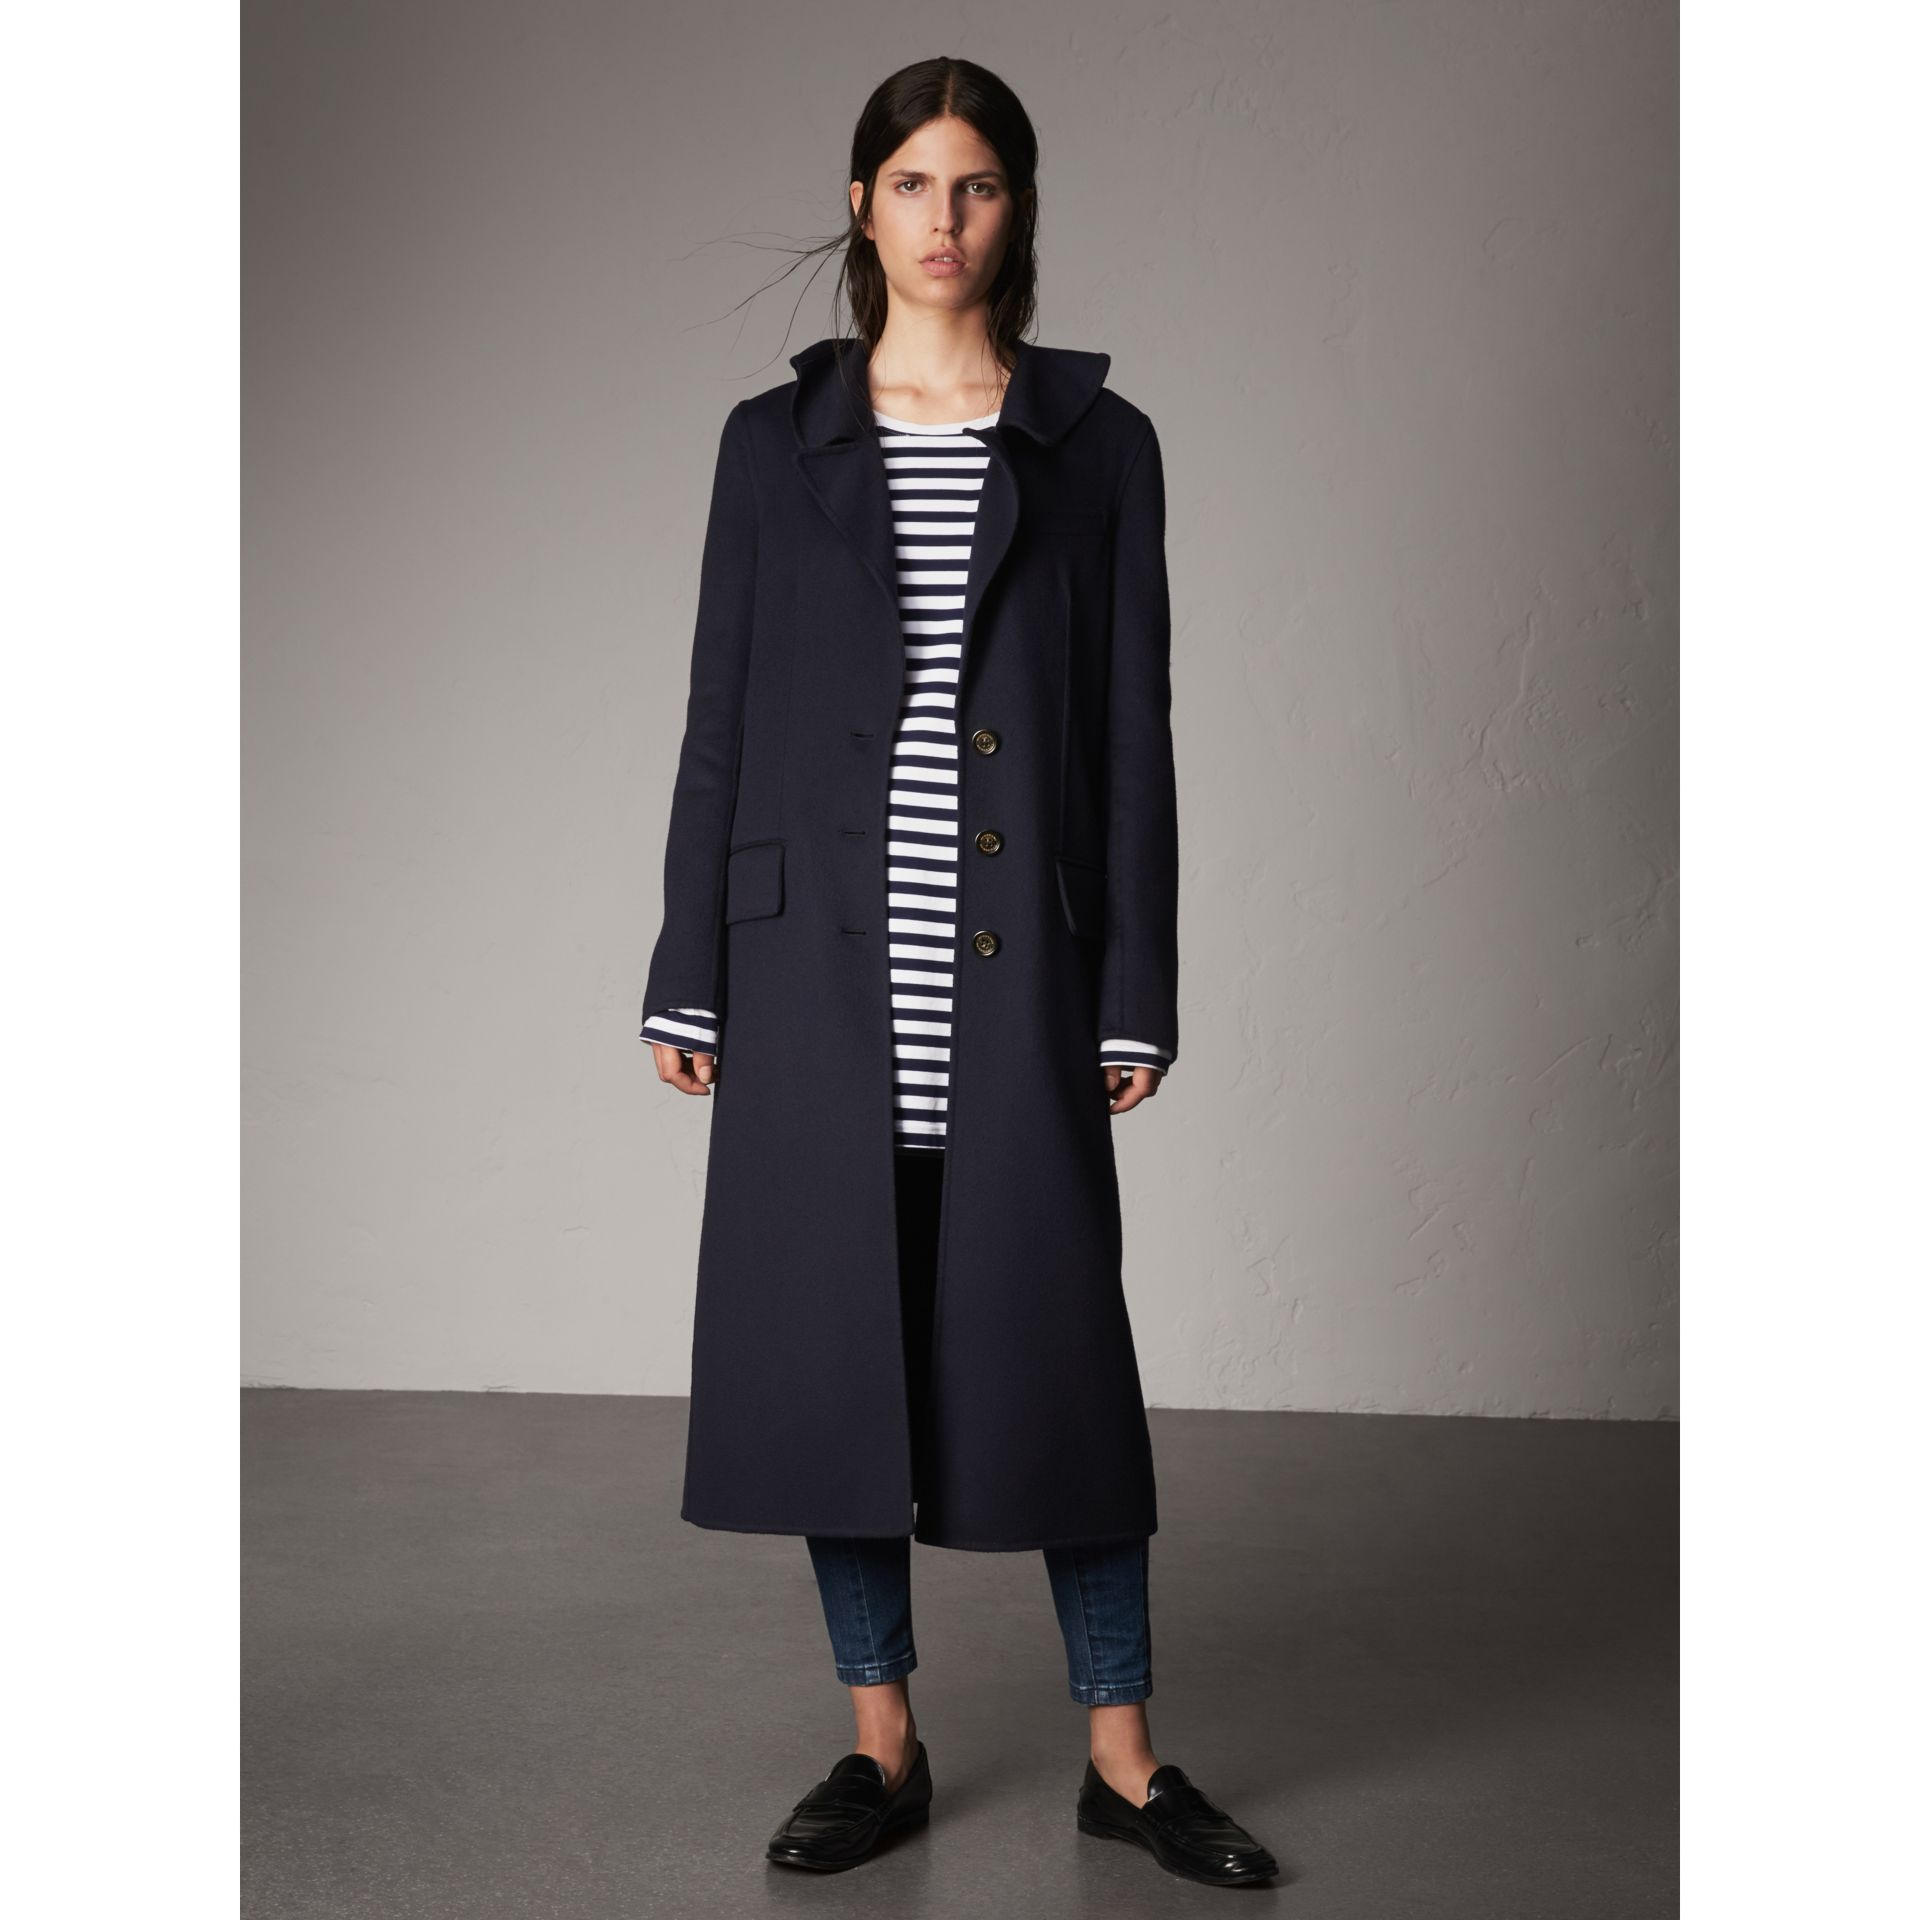 Ruffled Collar Wool Cashmere Coat in Navy - Women | Burberry - gallery image 1